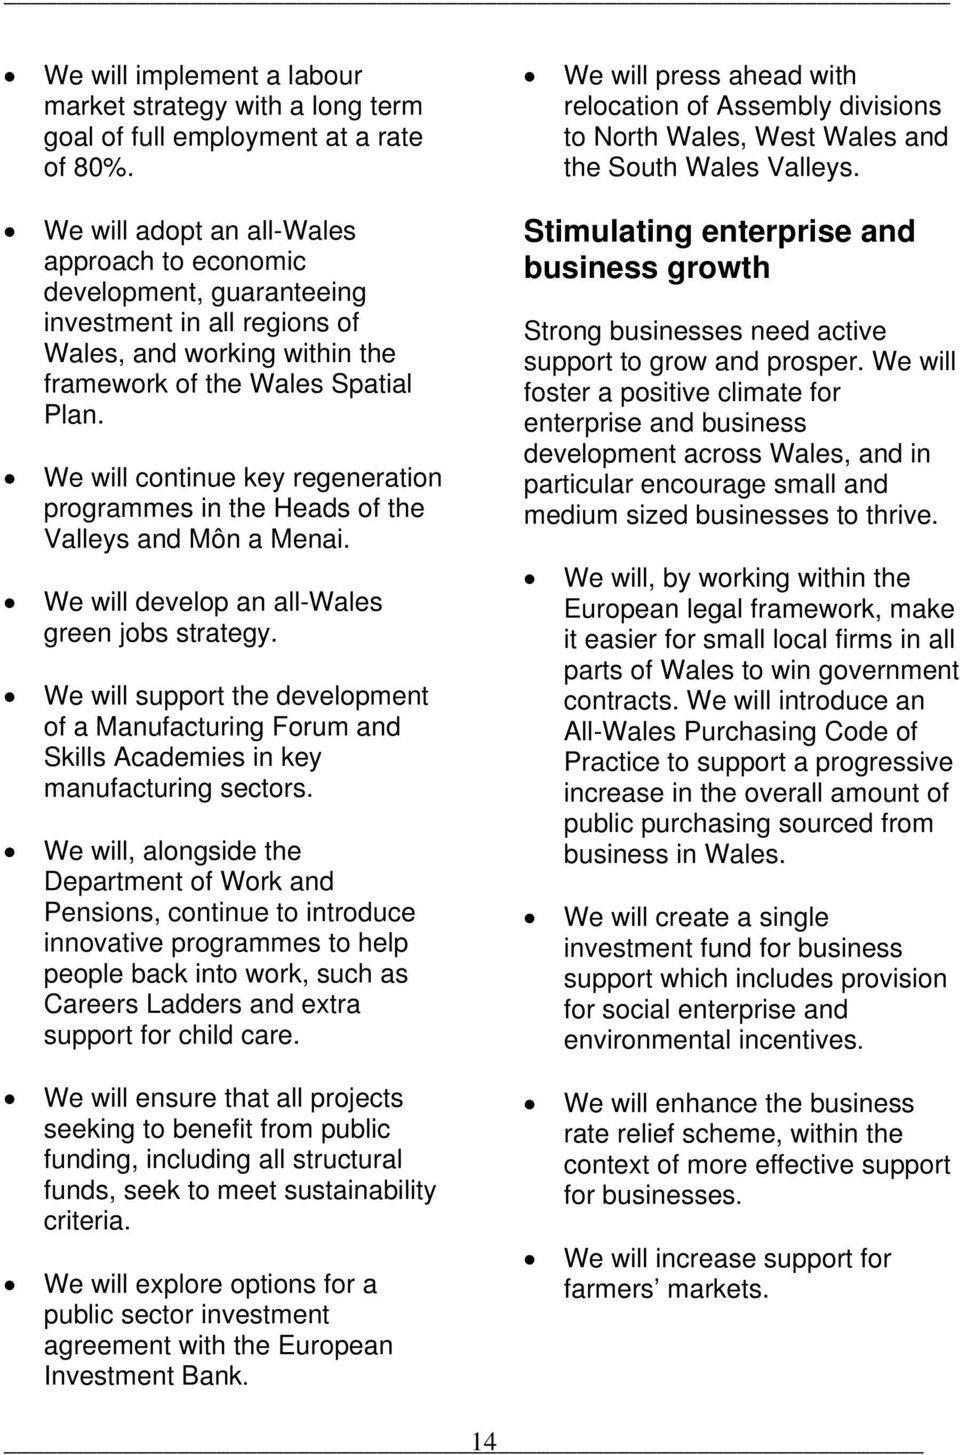 We will continue key regeneration programmes in the Heads of the Valleys and Môn a Menai. We will develop an all-wales green jobs strategy.